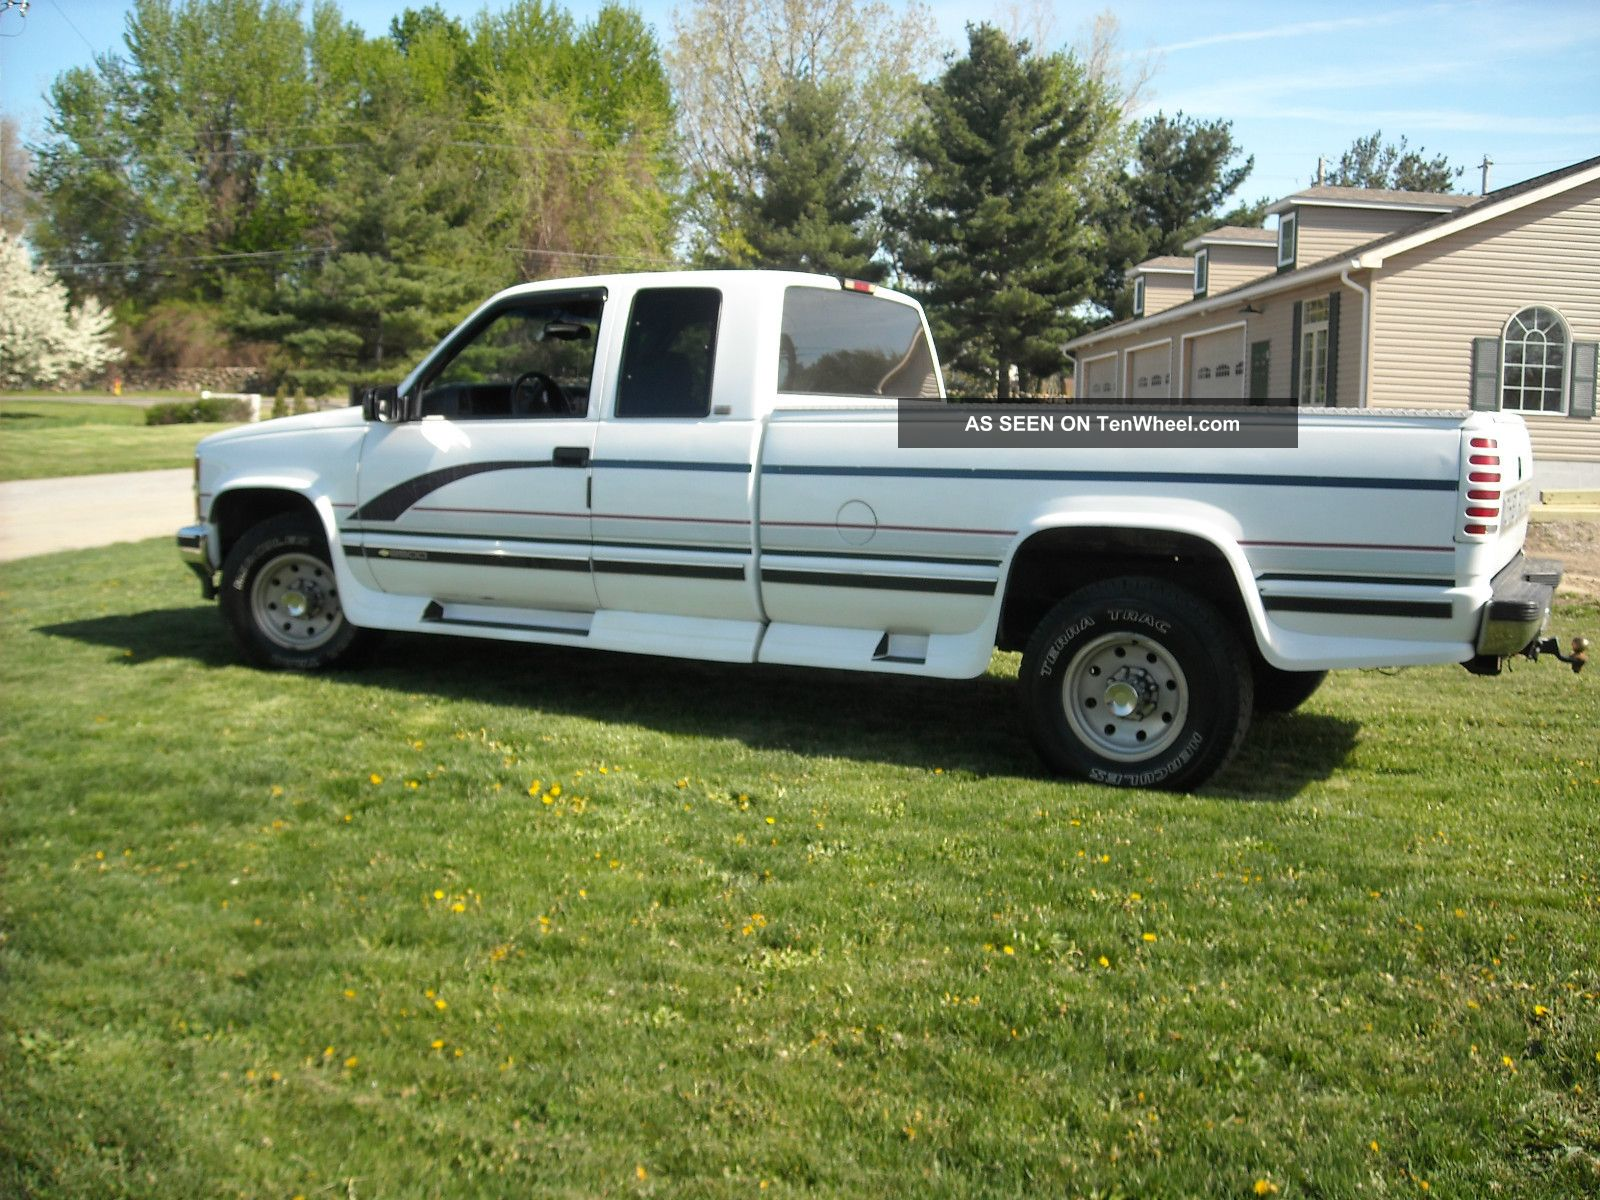 1997 chevy silverado 2500 pickup w extended cab and long bed. Black Bedroom Furniture Sets. Home Design Ideas